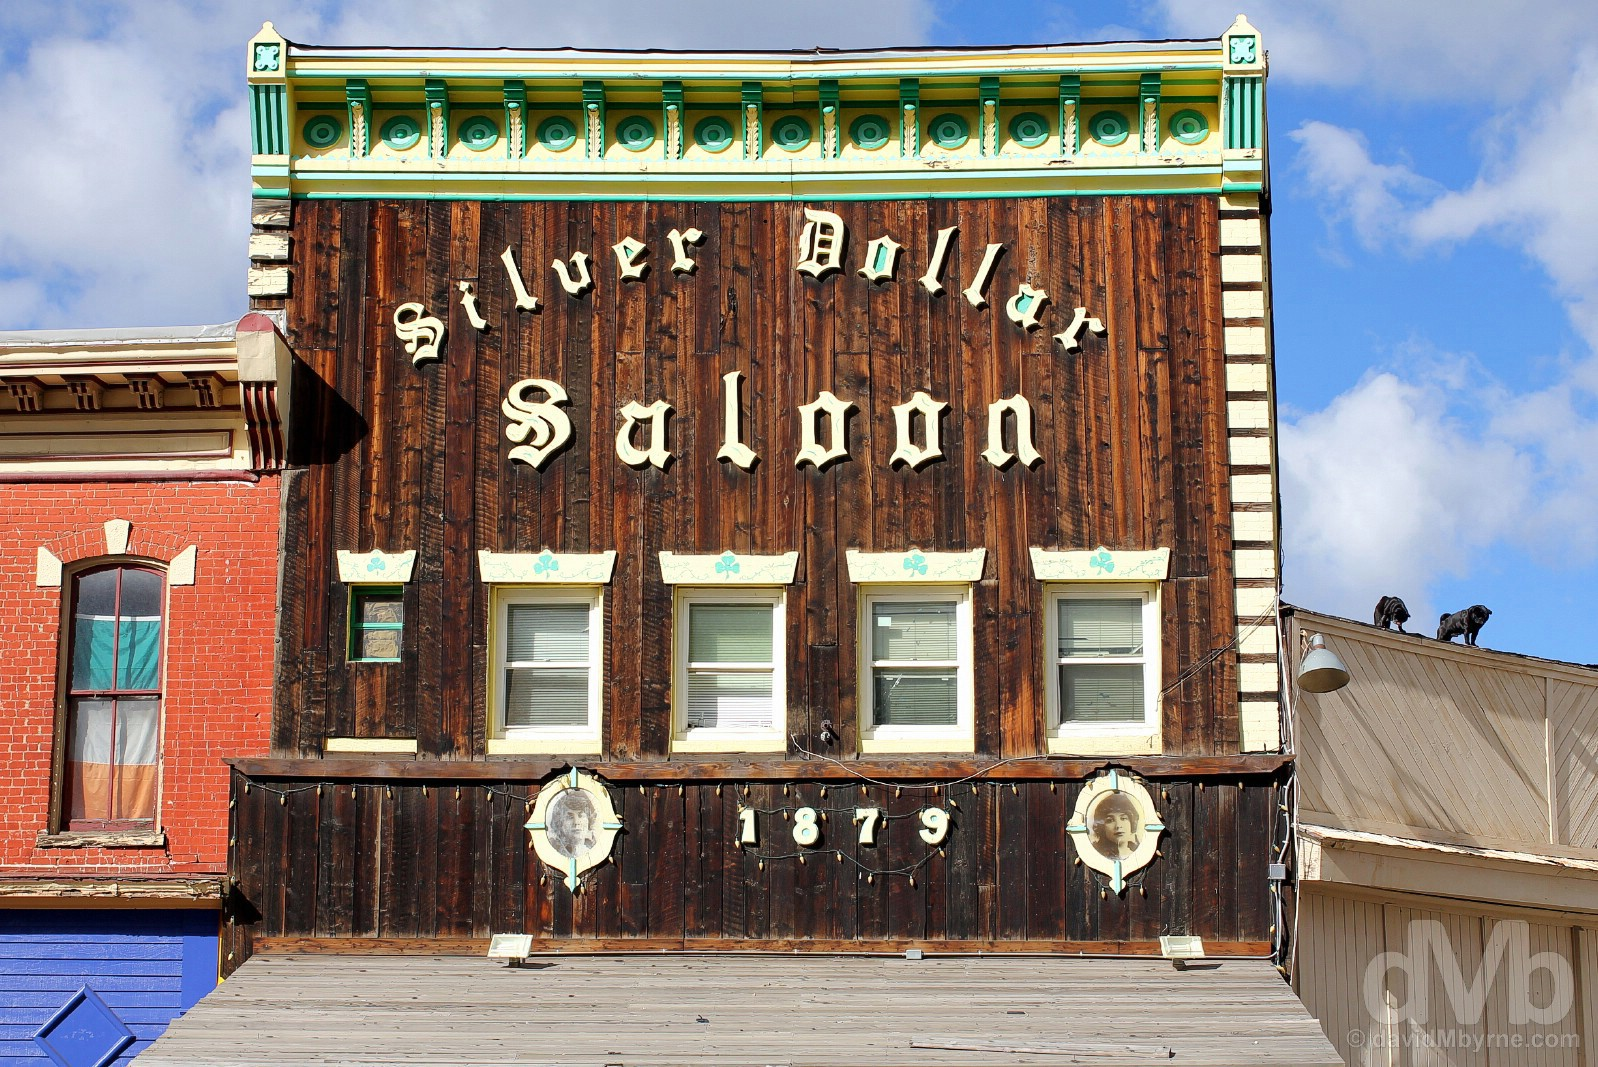 The Silver Dollar Saloon, Harrison Avenue, Leadville, central Colorado, USA. September 13, 2016.